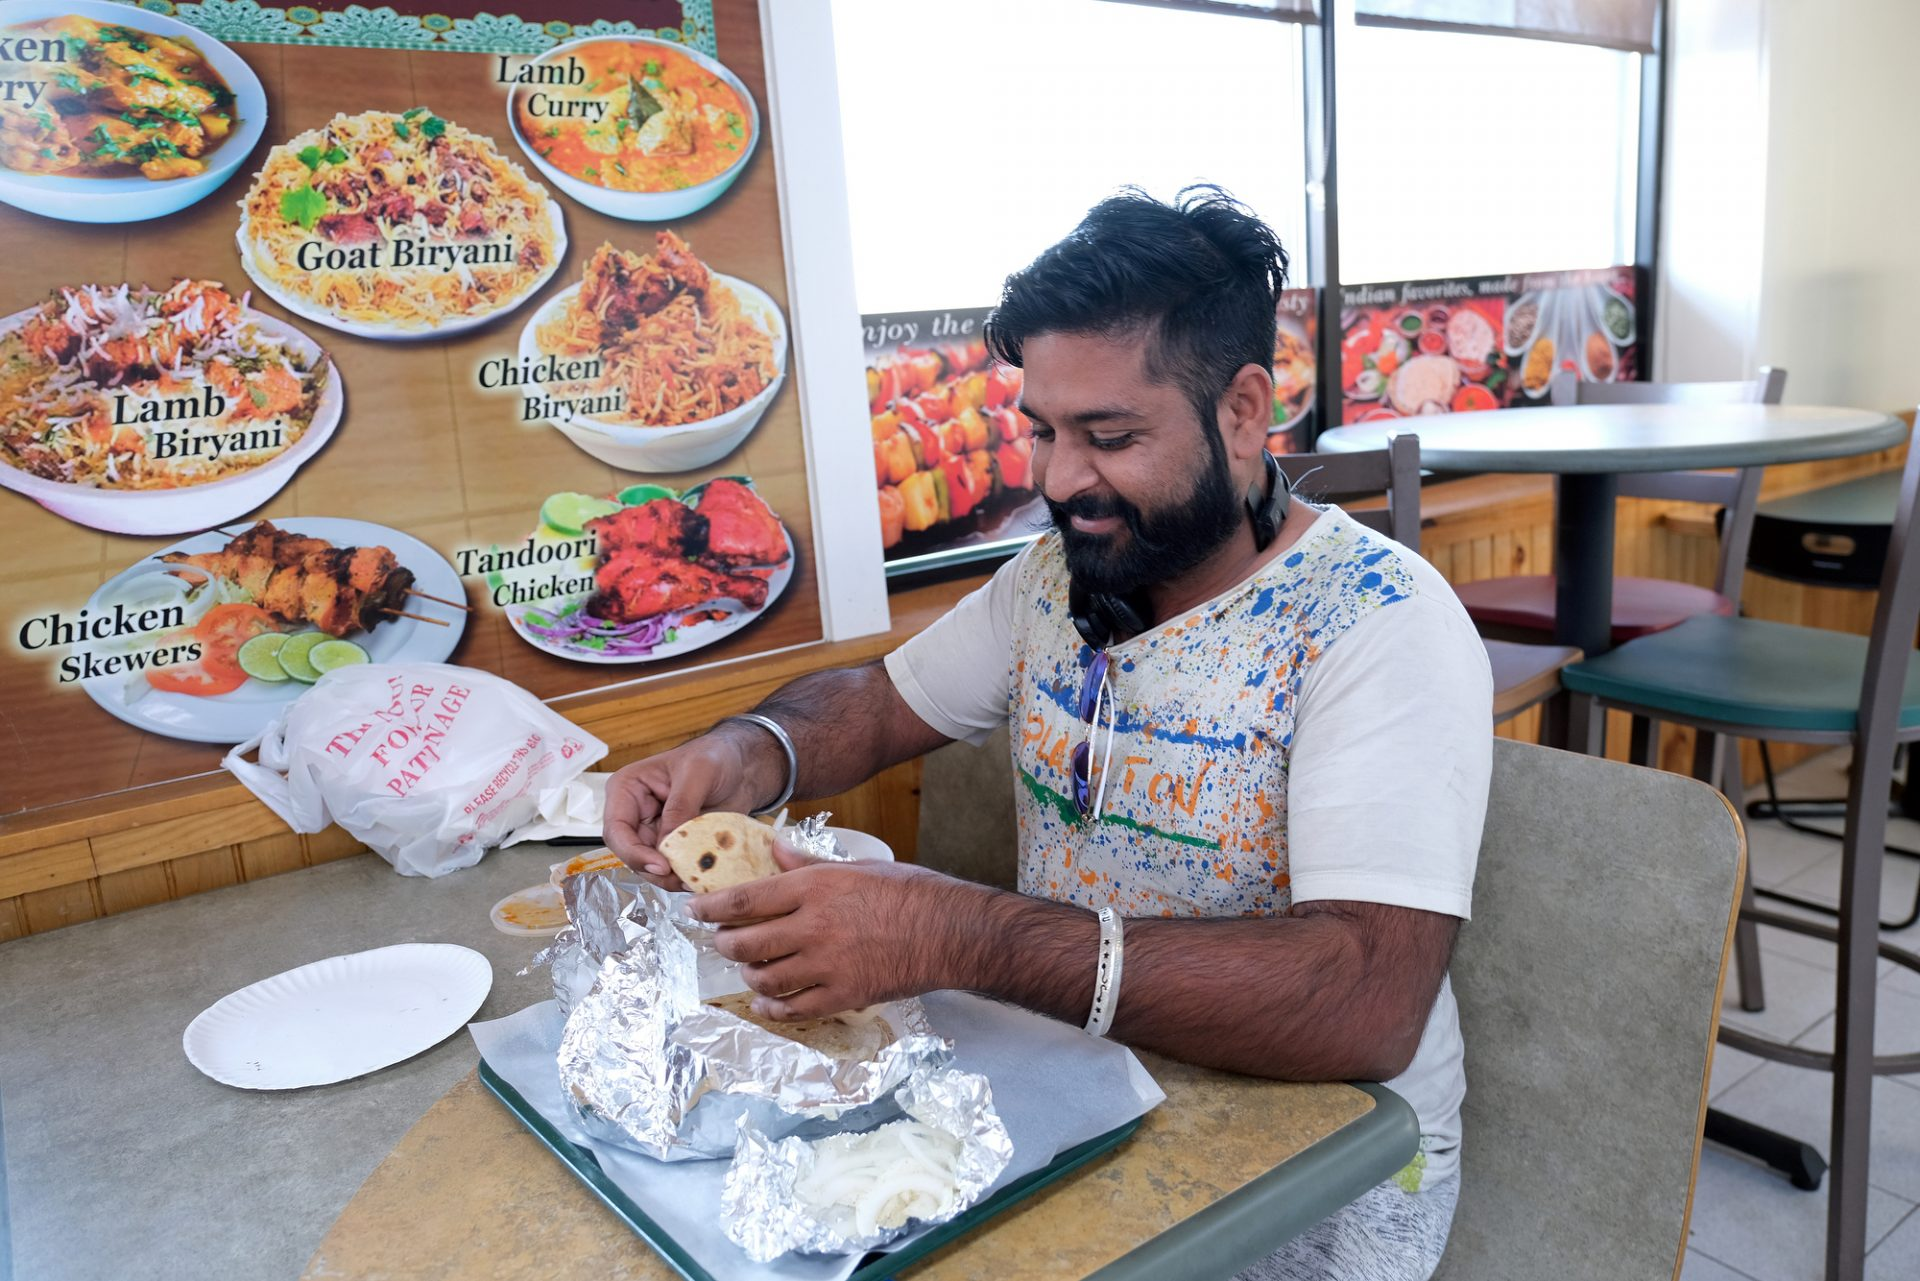 Aman Singh, of Indiana, talks while eating a meal at Eat Spice on Oct. 24, 2019, in the truck stop on route 534 off I-80 in White Haven, Pennsylvania. The restaurant caters to members of the Sikh community and as there is a large population of truckers from that community, the Indian Dhaba and Mediterranean dishes become hard to find on the road.